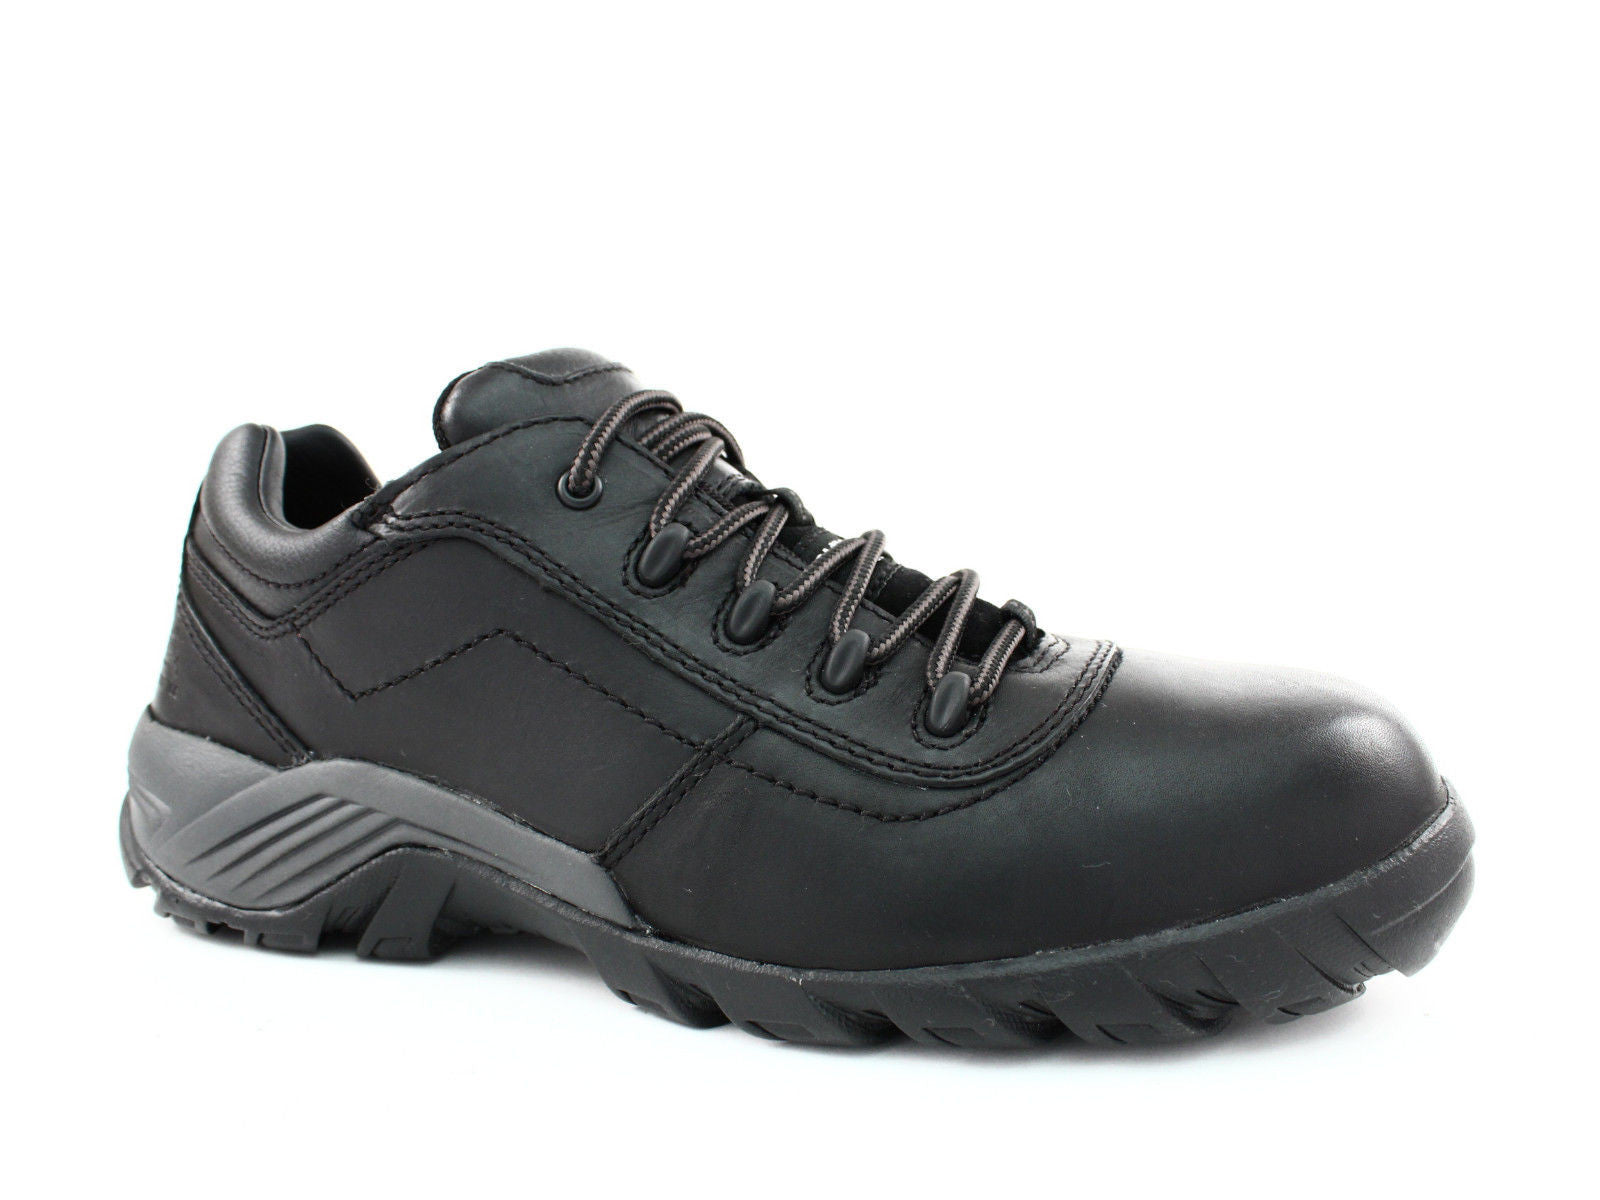 Caterpillar Terbium Composite Toe EH Mens Work Safety Black Leather Shoes